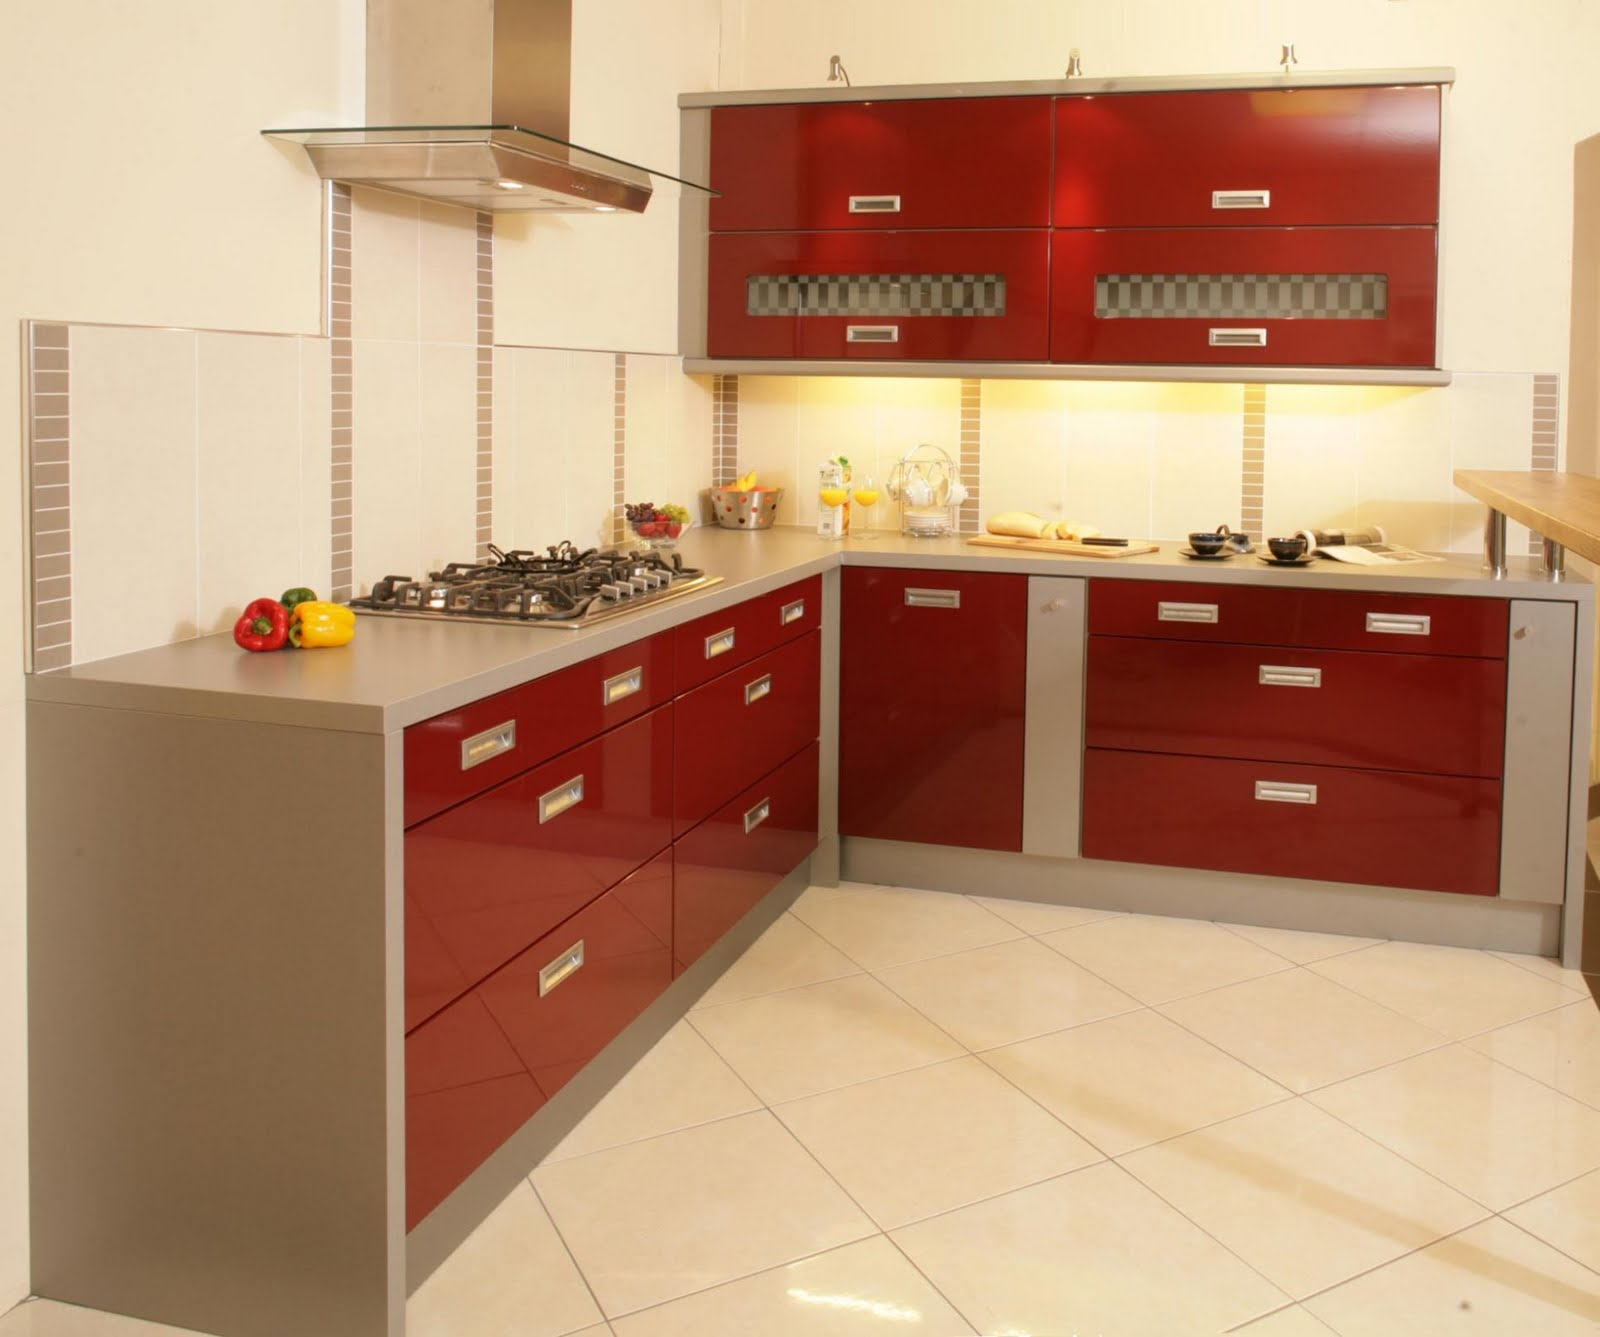 Kitchen Furniture: Cabinets For Kitchen: Pictures Of Red Kitchen Cabinets